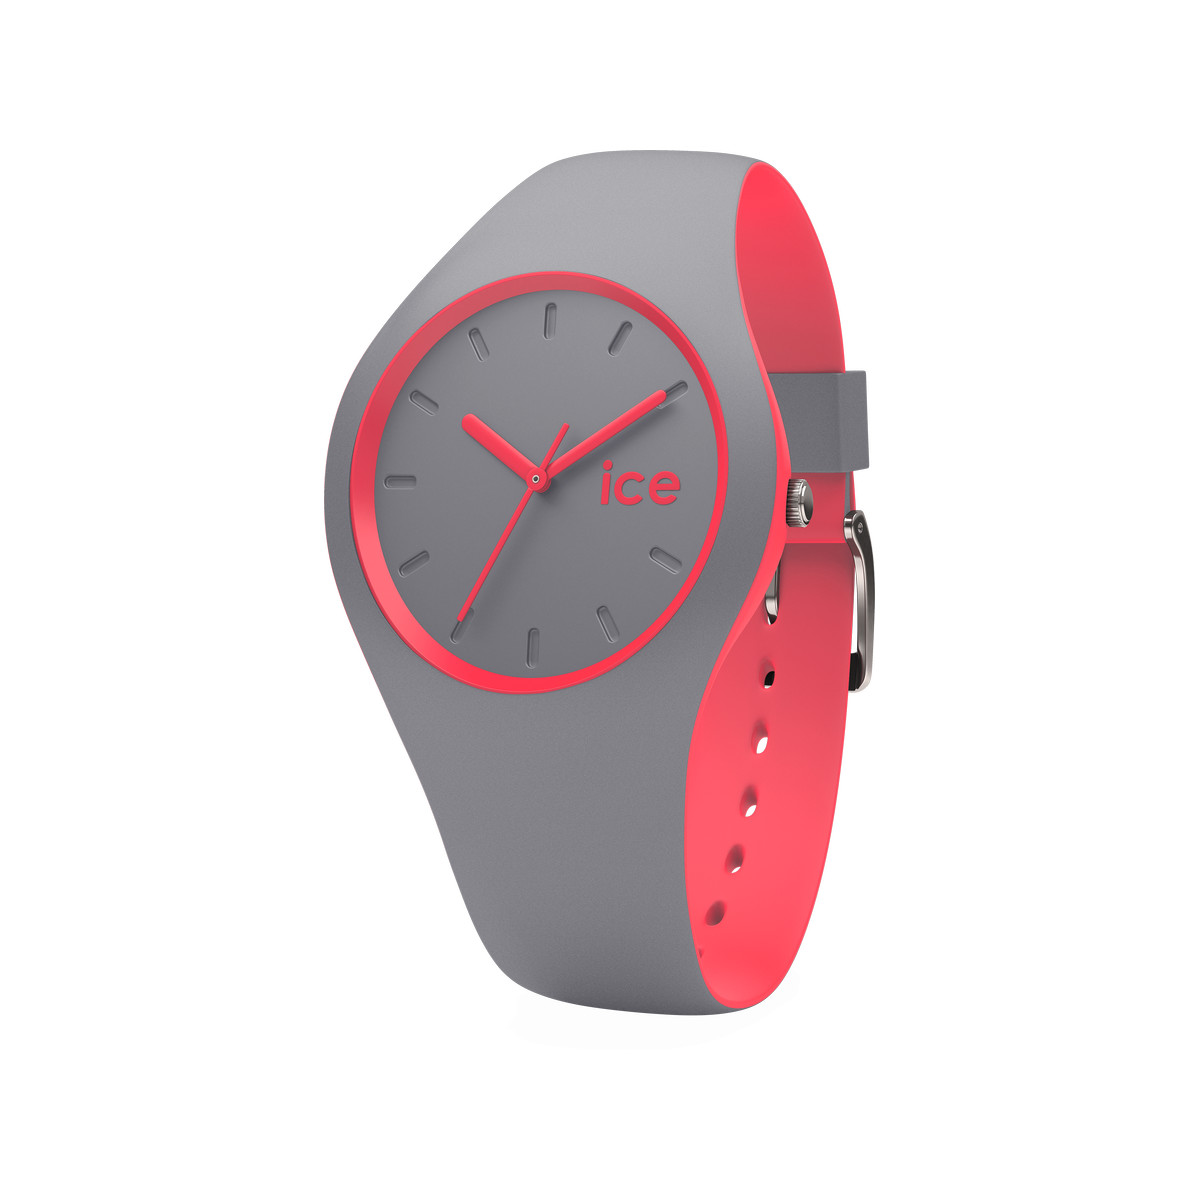 Montre Ice Watch mixte silicone gris et rose